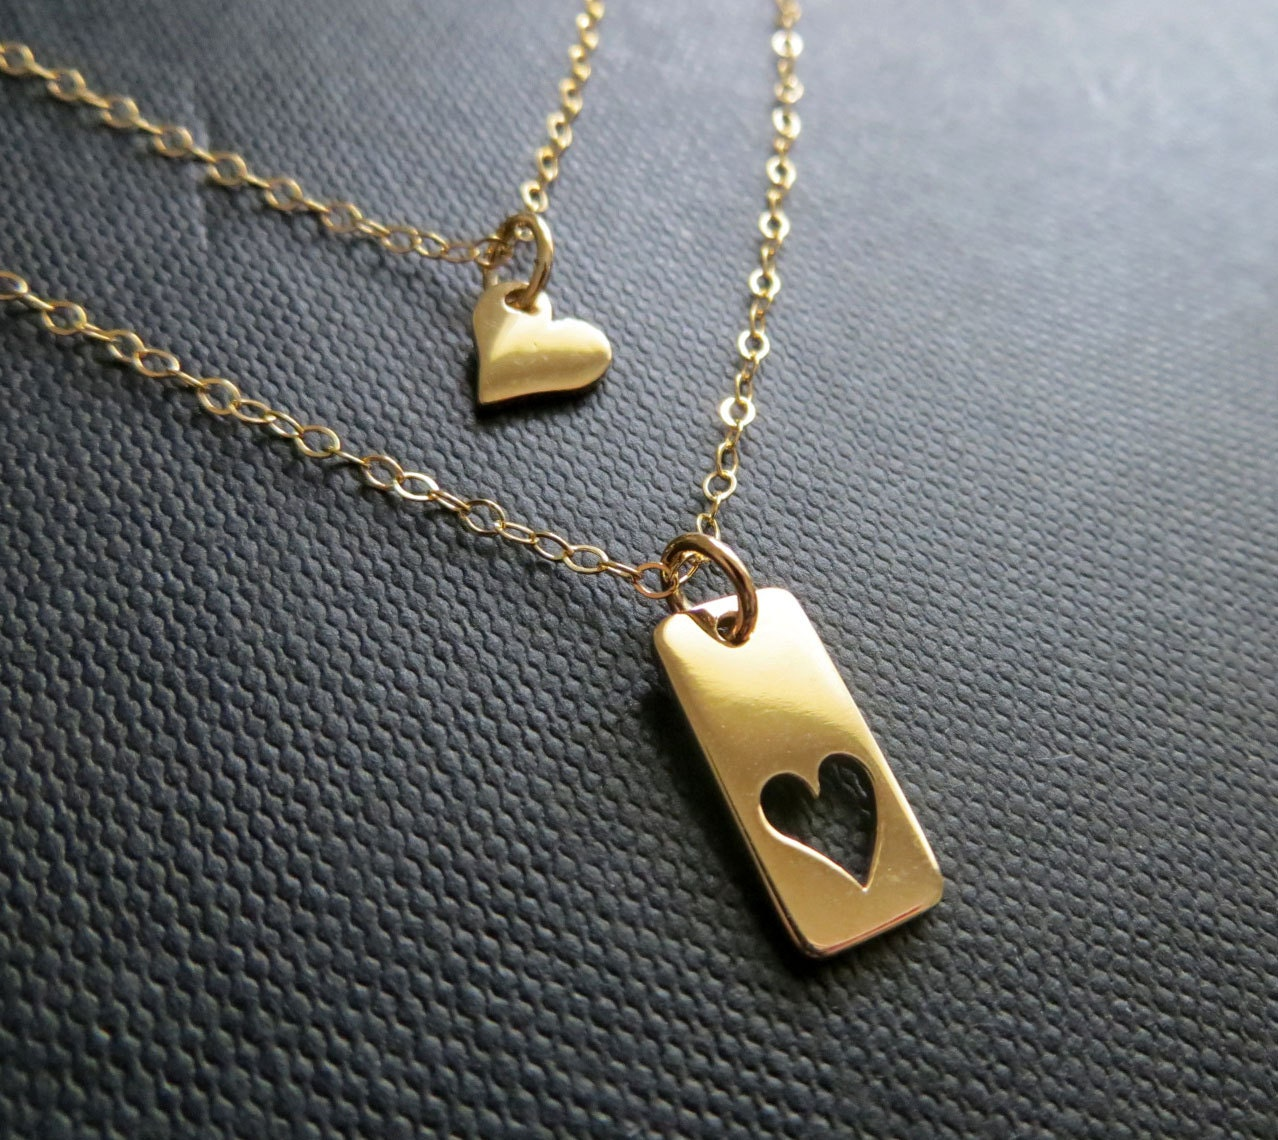 mother daughter necklace gold heart necklace two necklaces. Black Bedroom Furniture Sets. Home Design Ideas